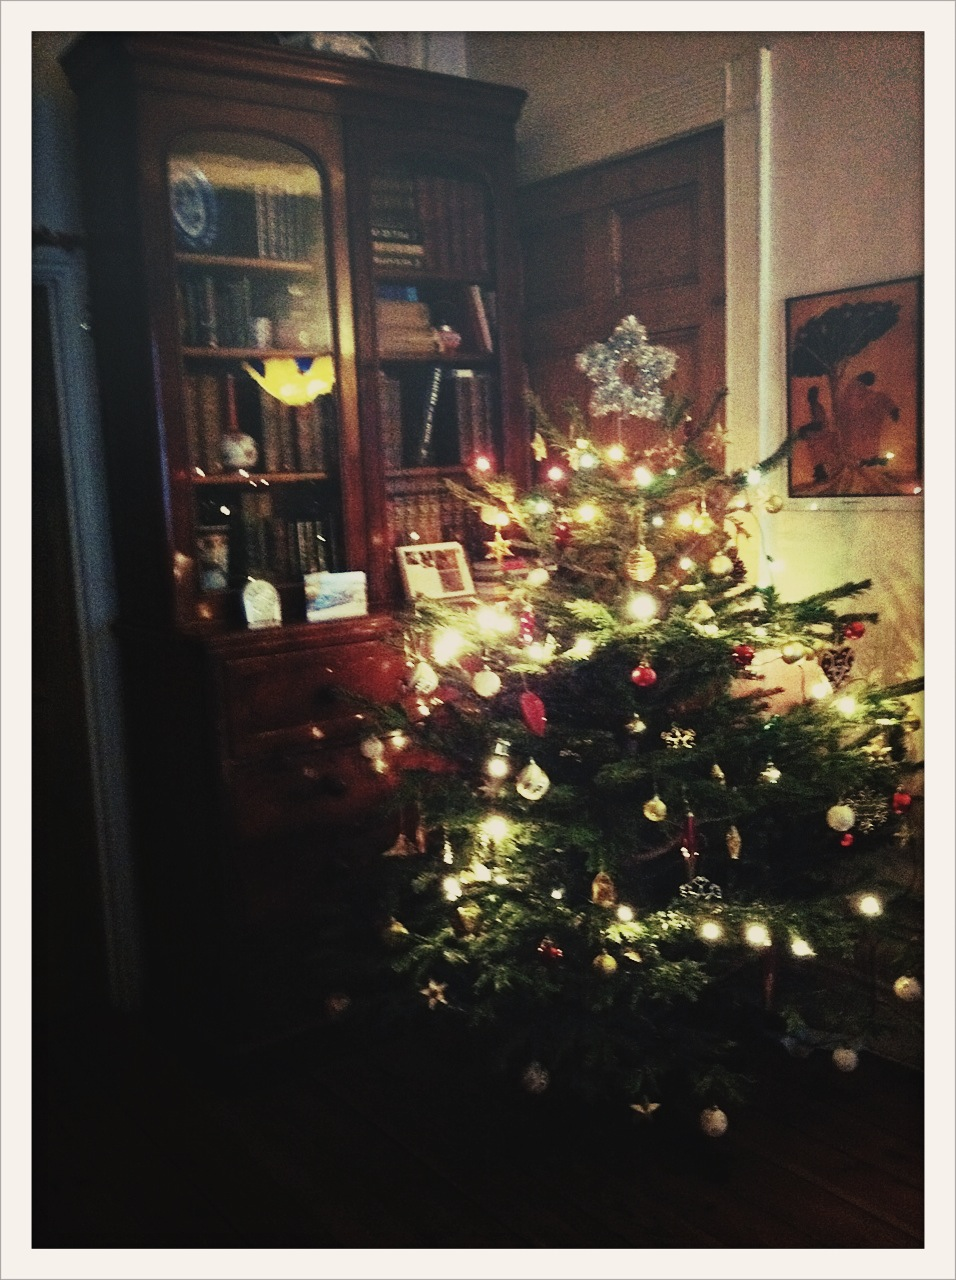 Weihnachtsbaum In England.A Very Merry English Christmas Sweet Home